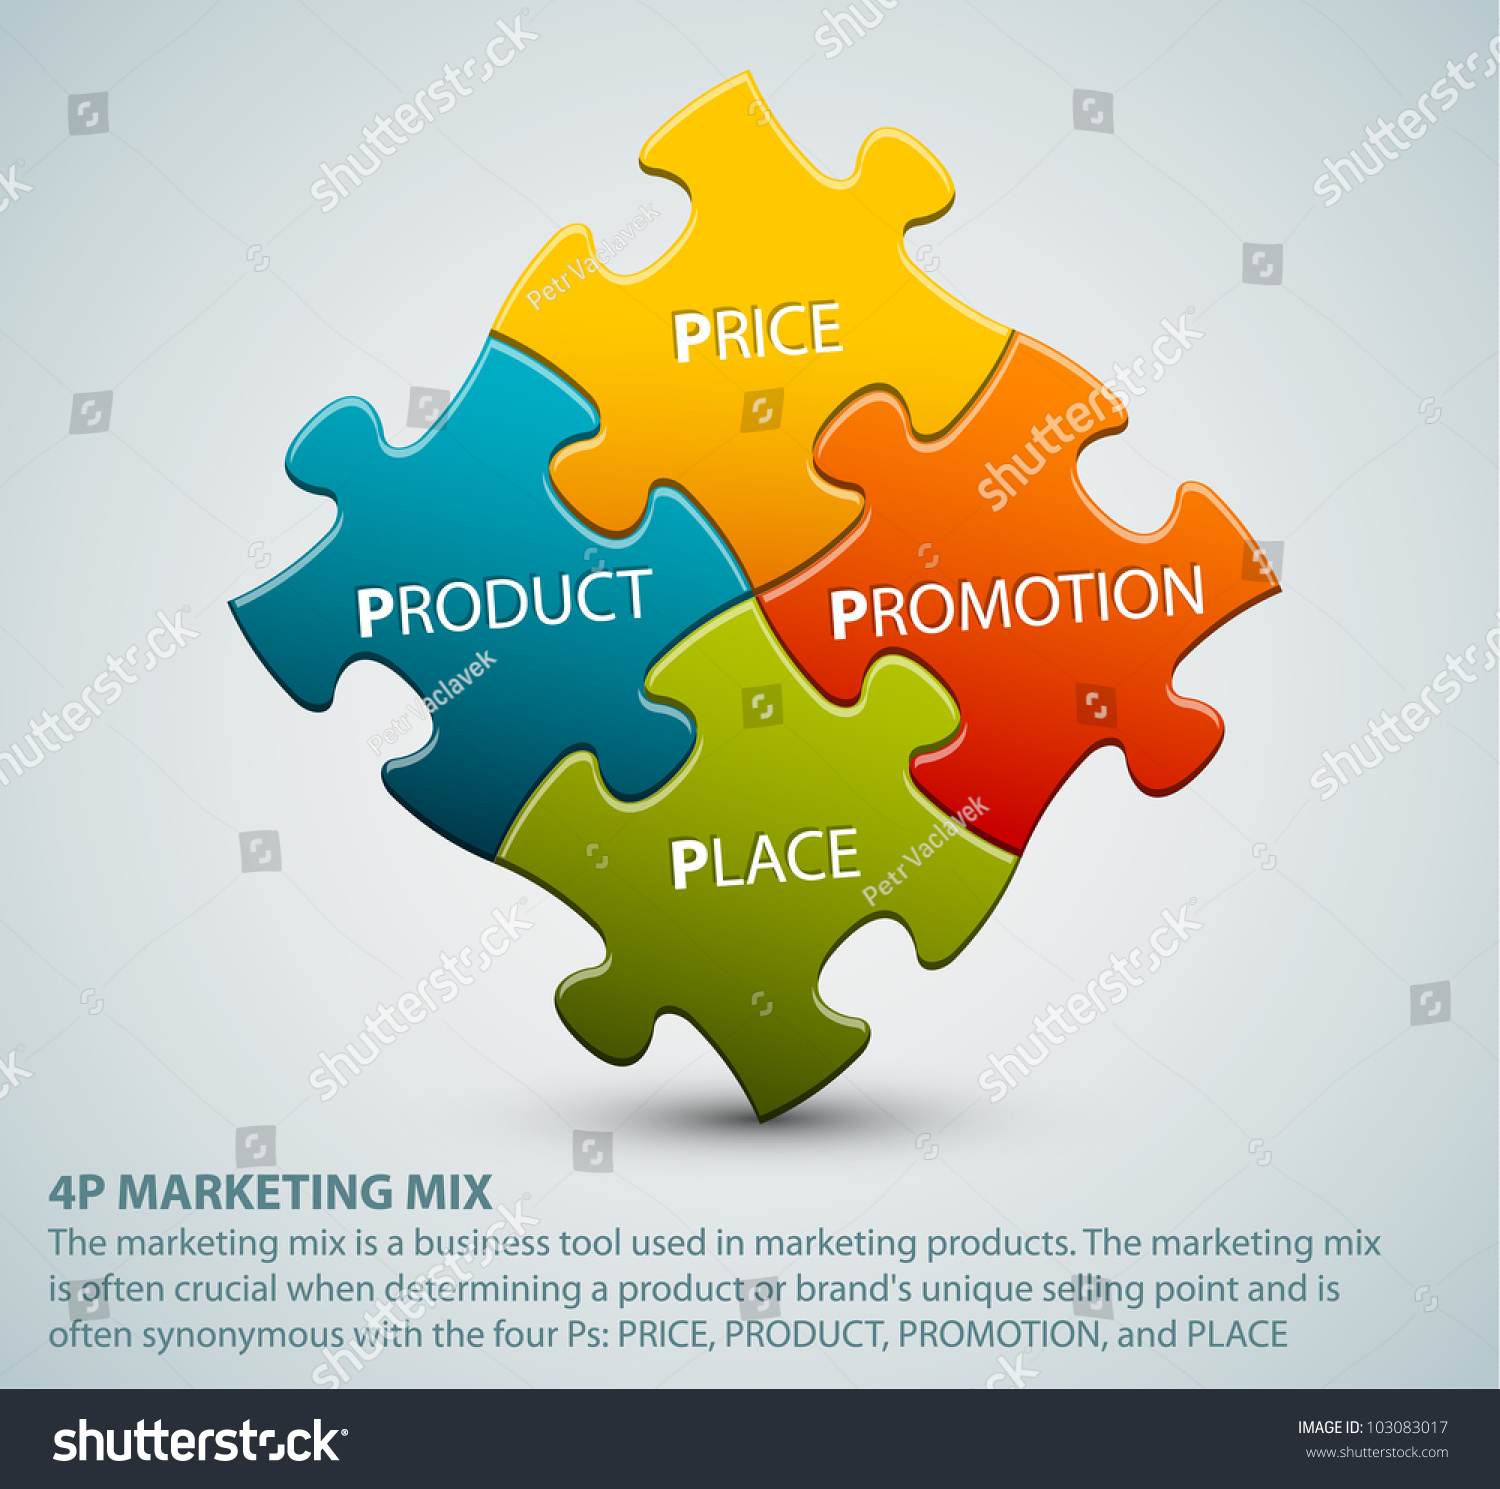 marketing mix product place promotion price The application of the marketing mix known as the four ps - product, price, place and promotion has been introduced over the past decades and has become widely recognized in the concept of.